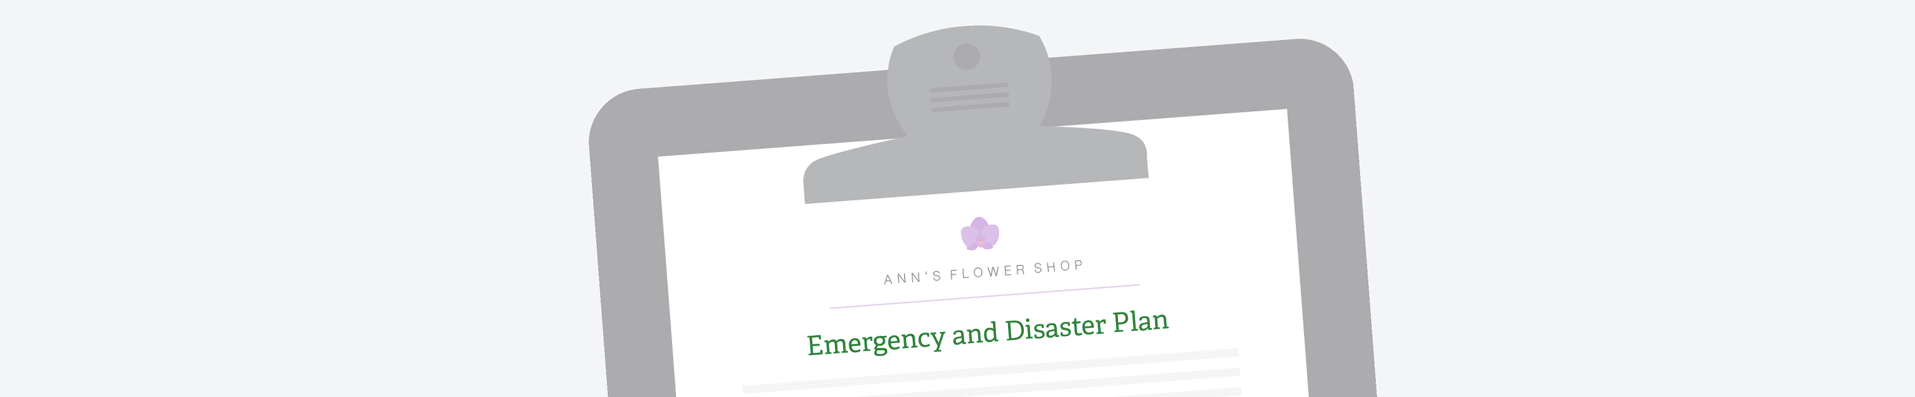 Establishing emergency recovery and disaster plan